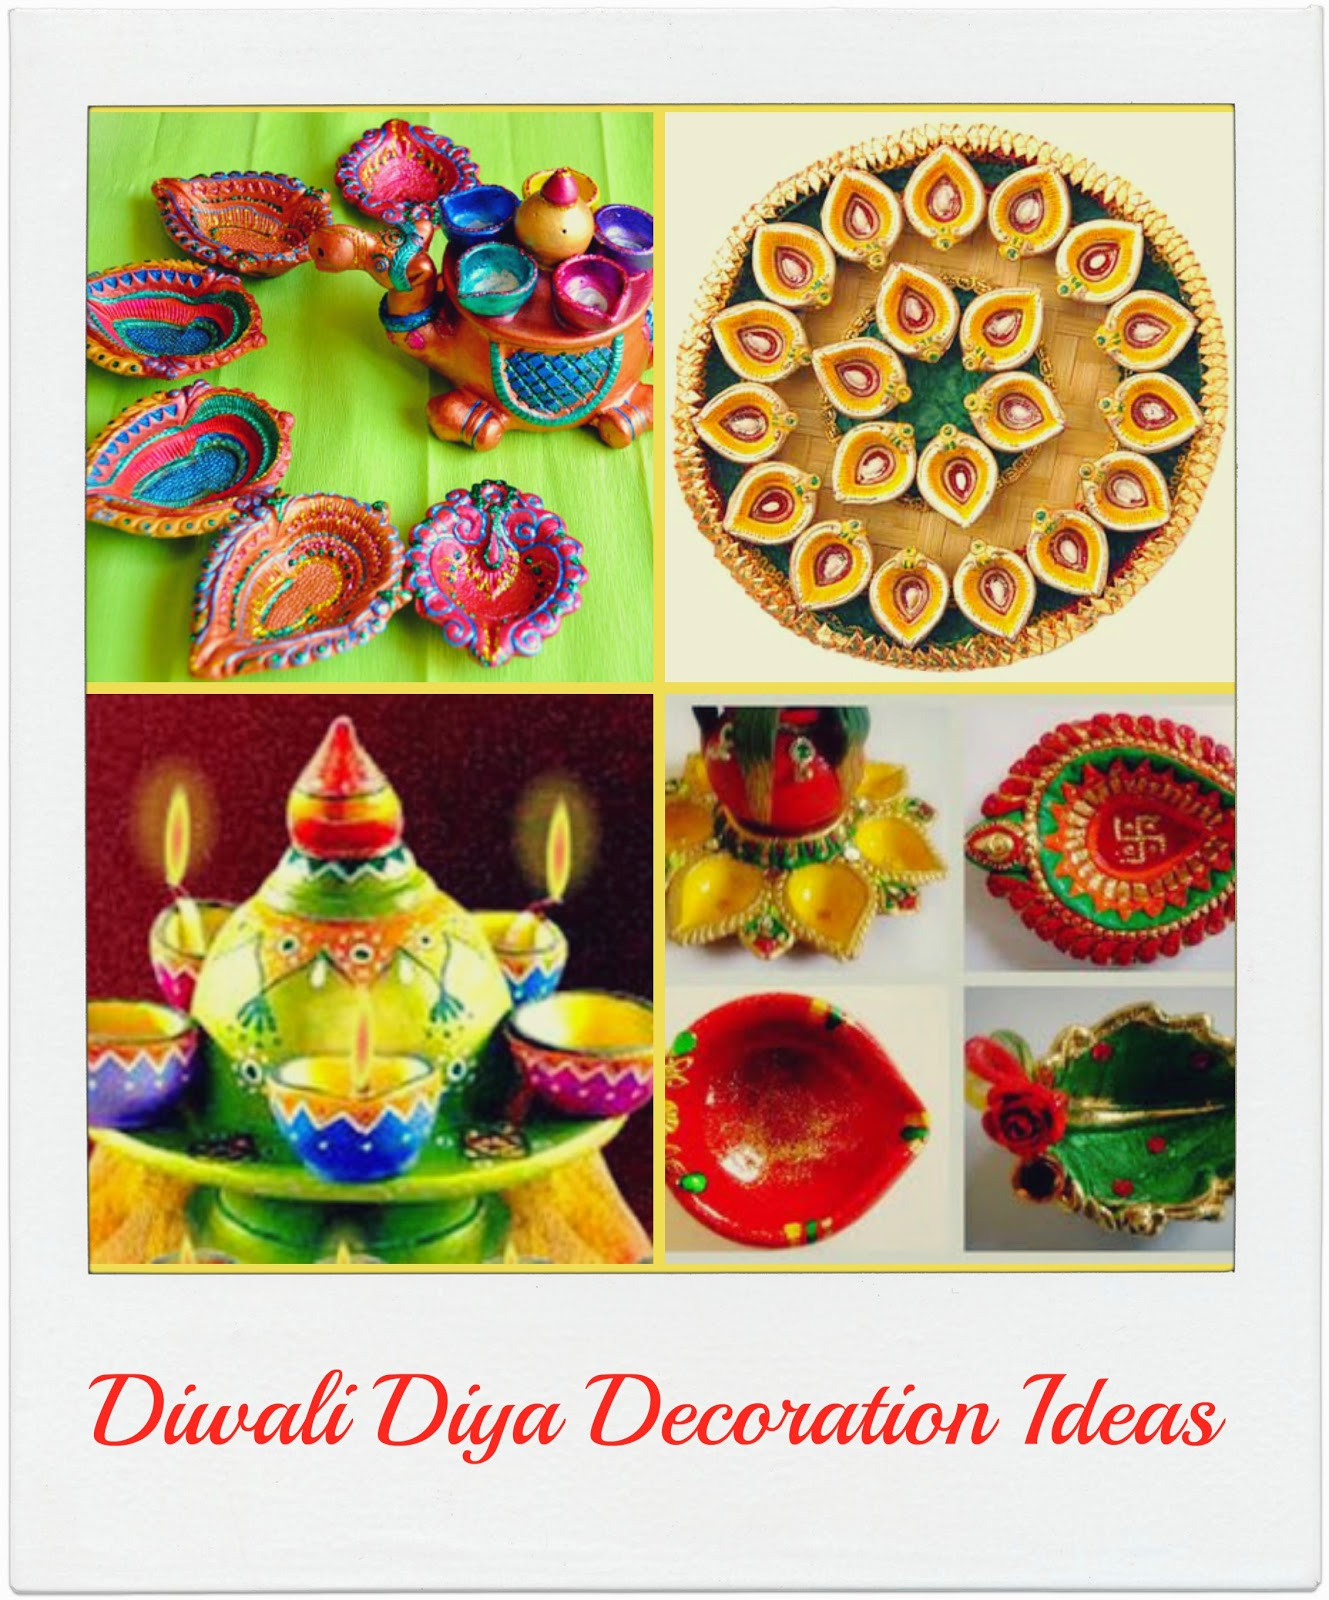 Design Decor Disha Diwali Decor Ideas Part I